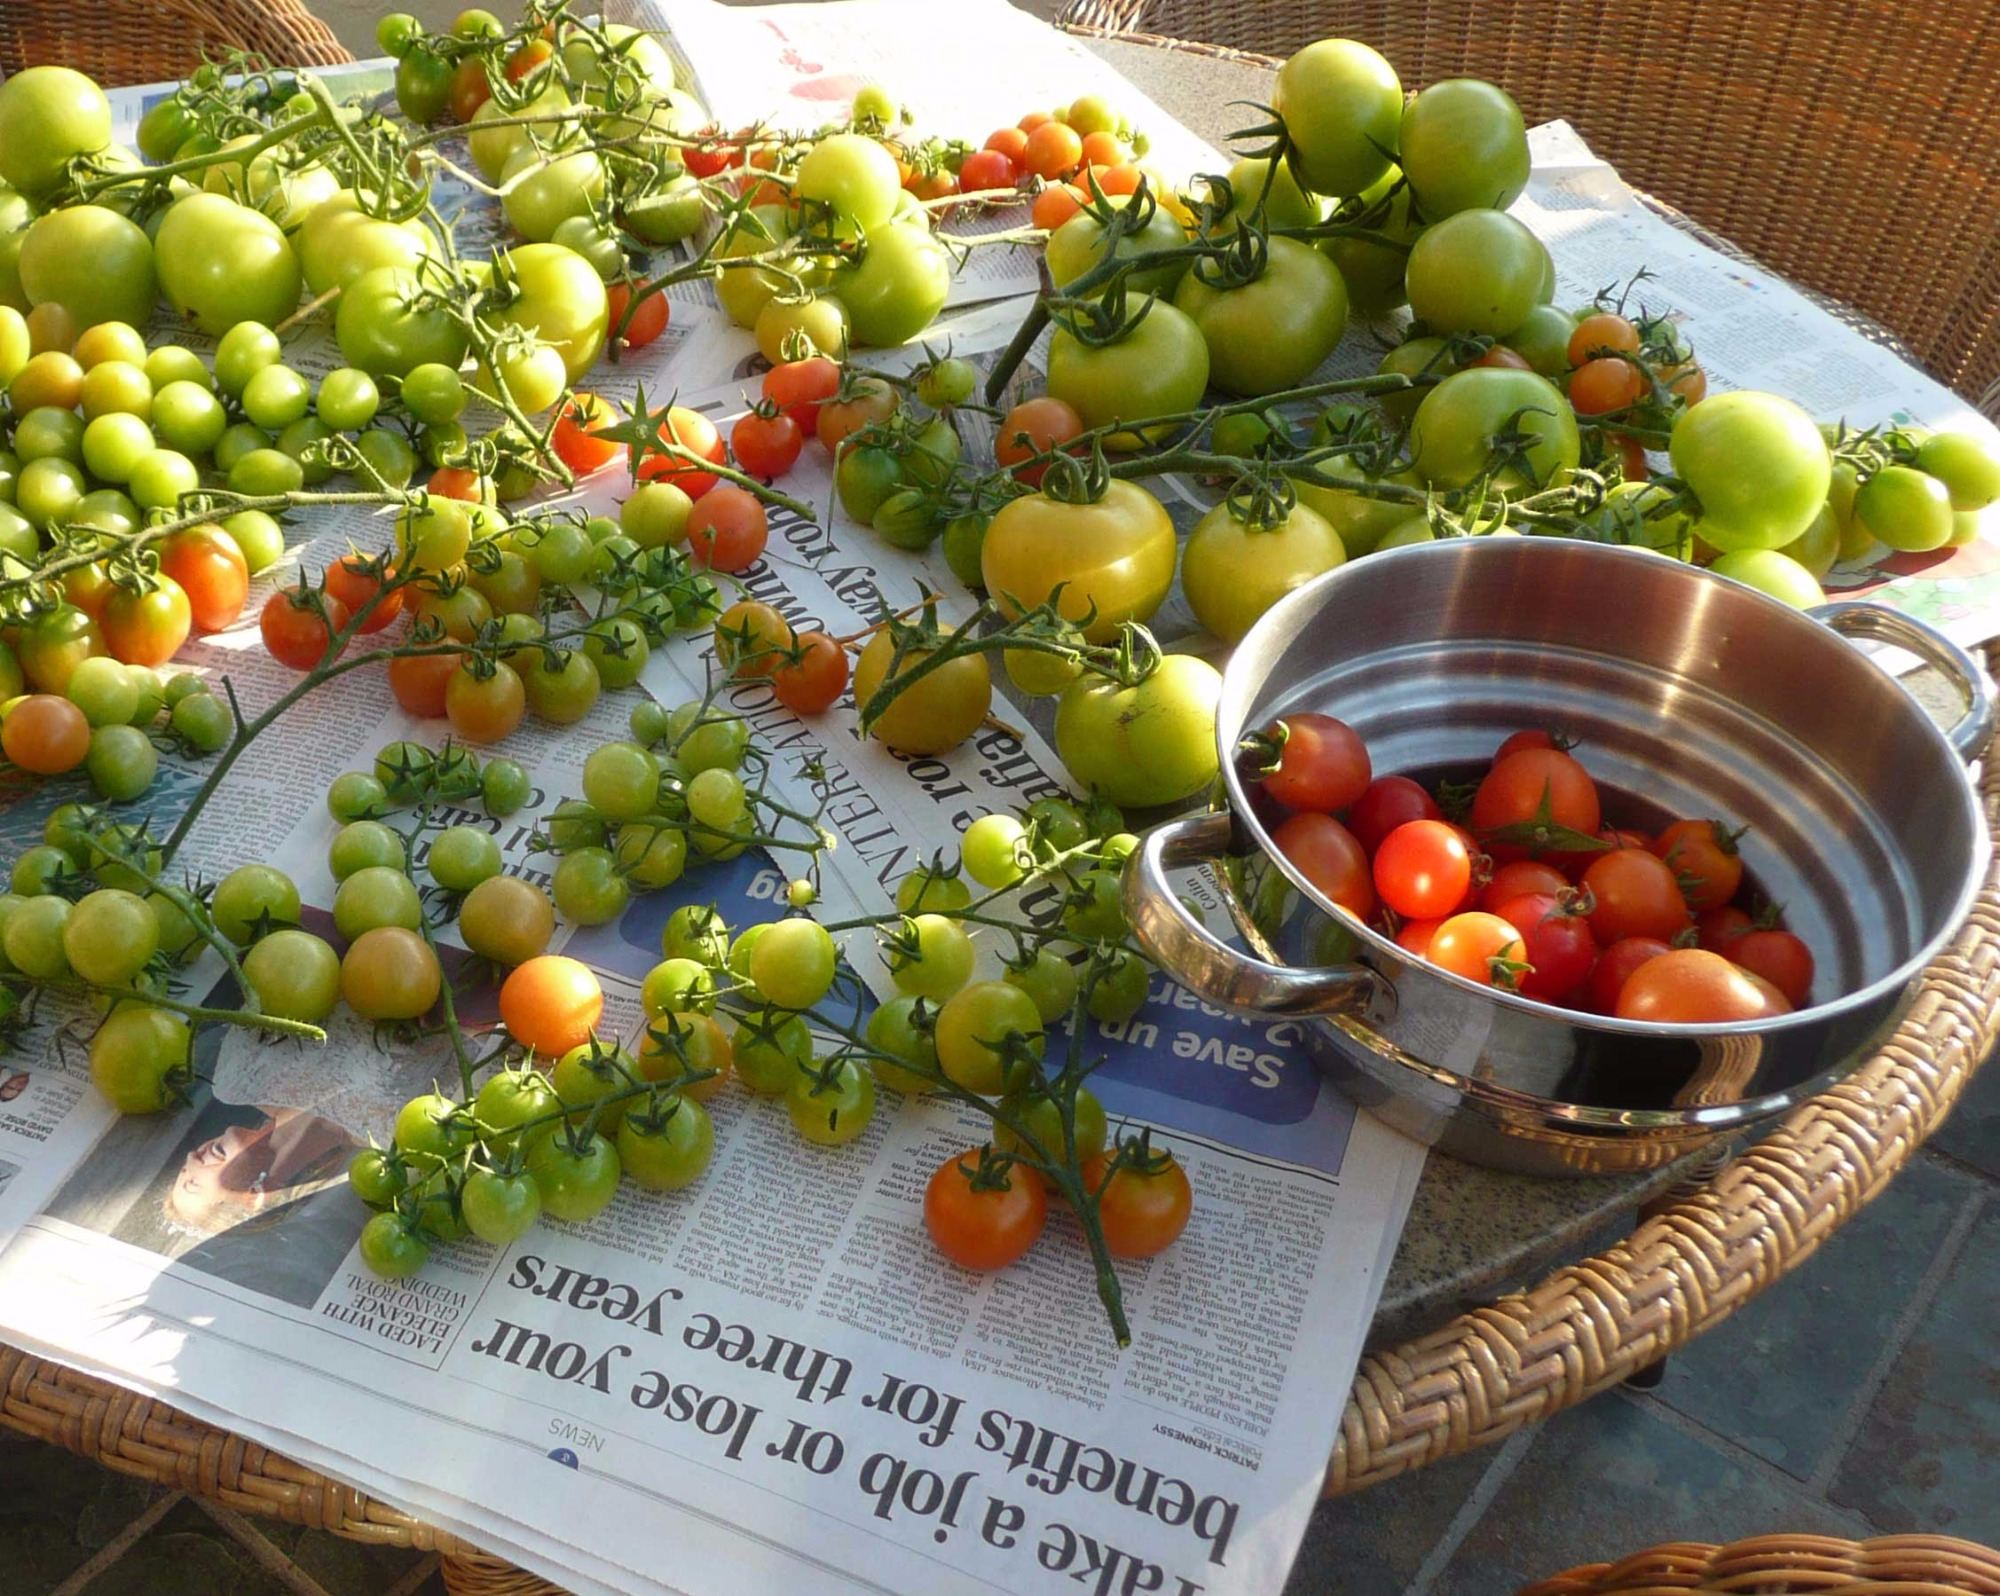 Best way to Ripen Green Tomatoes